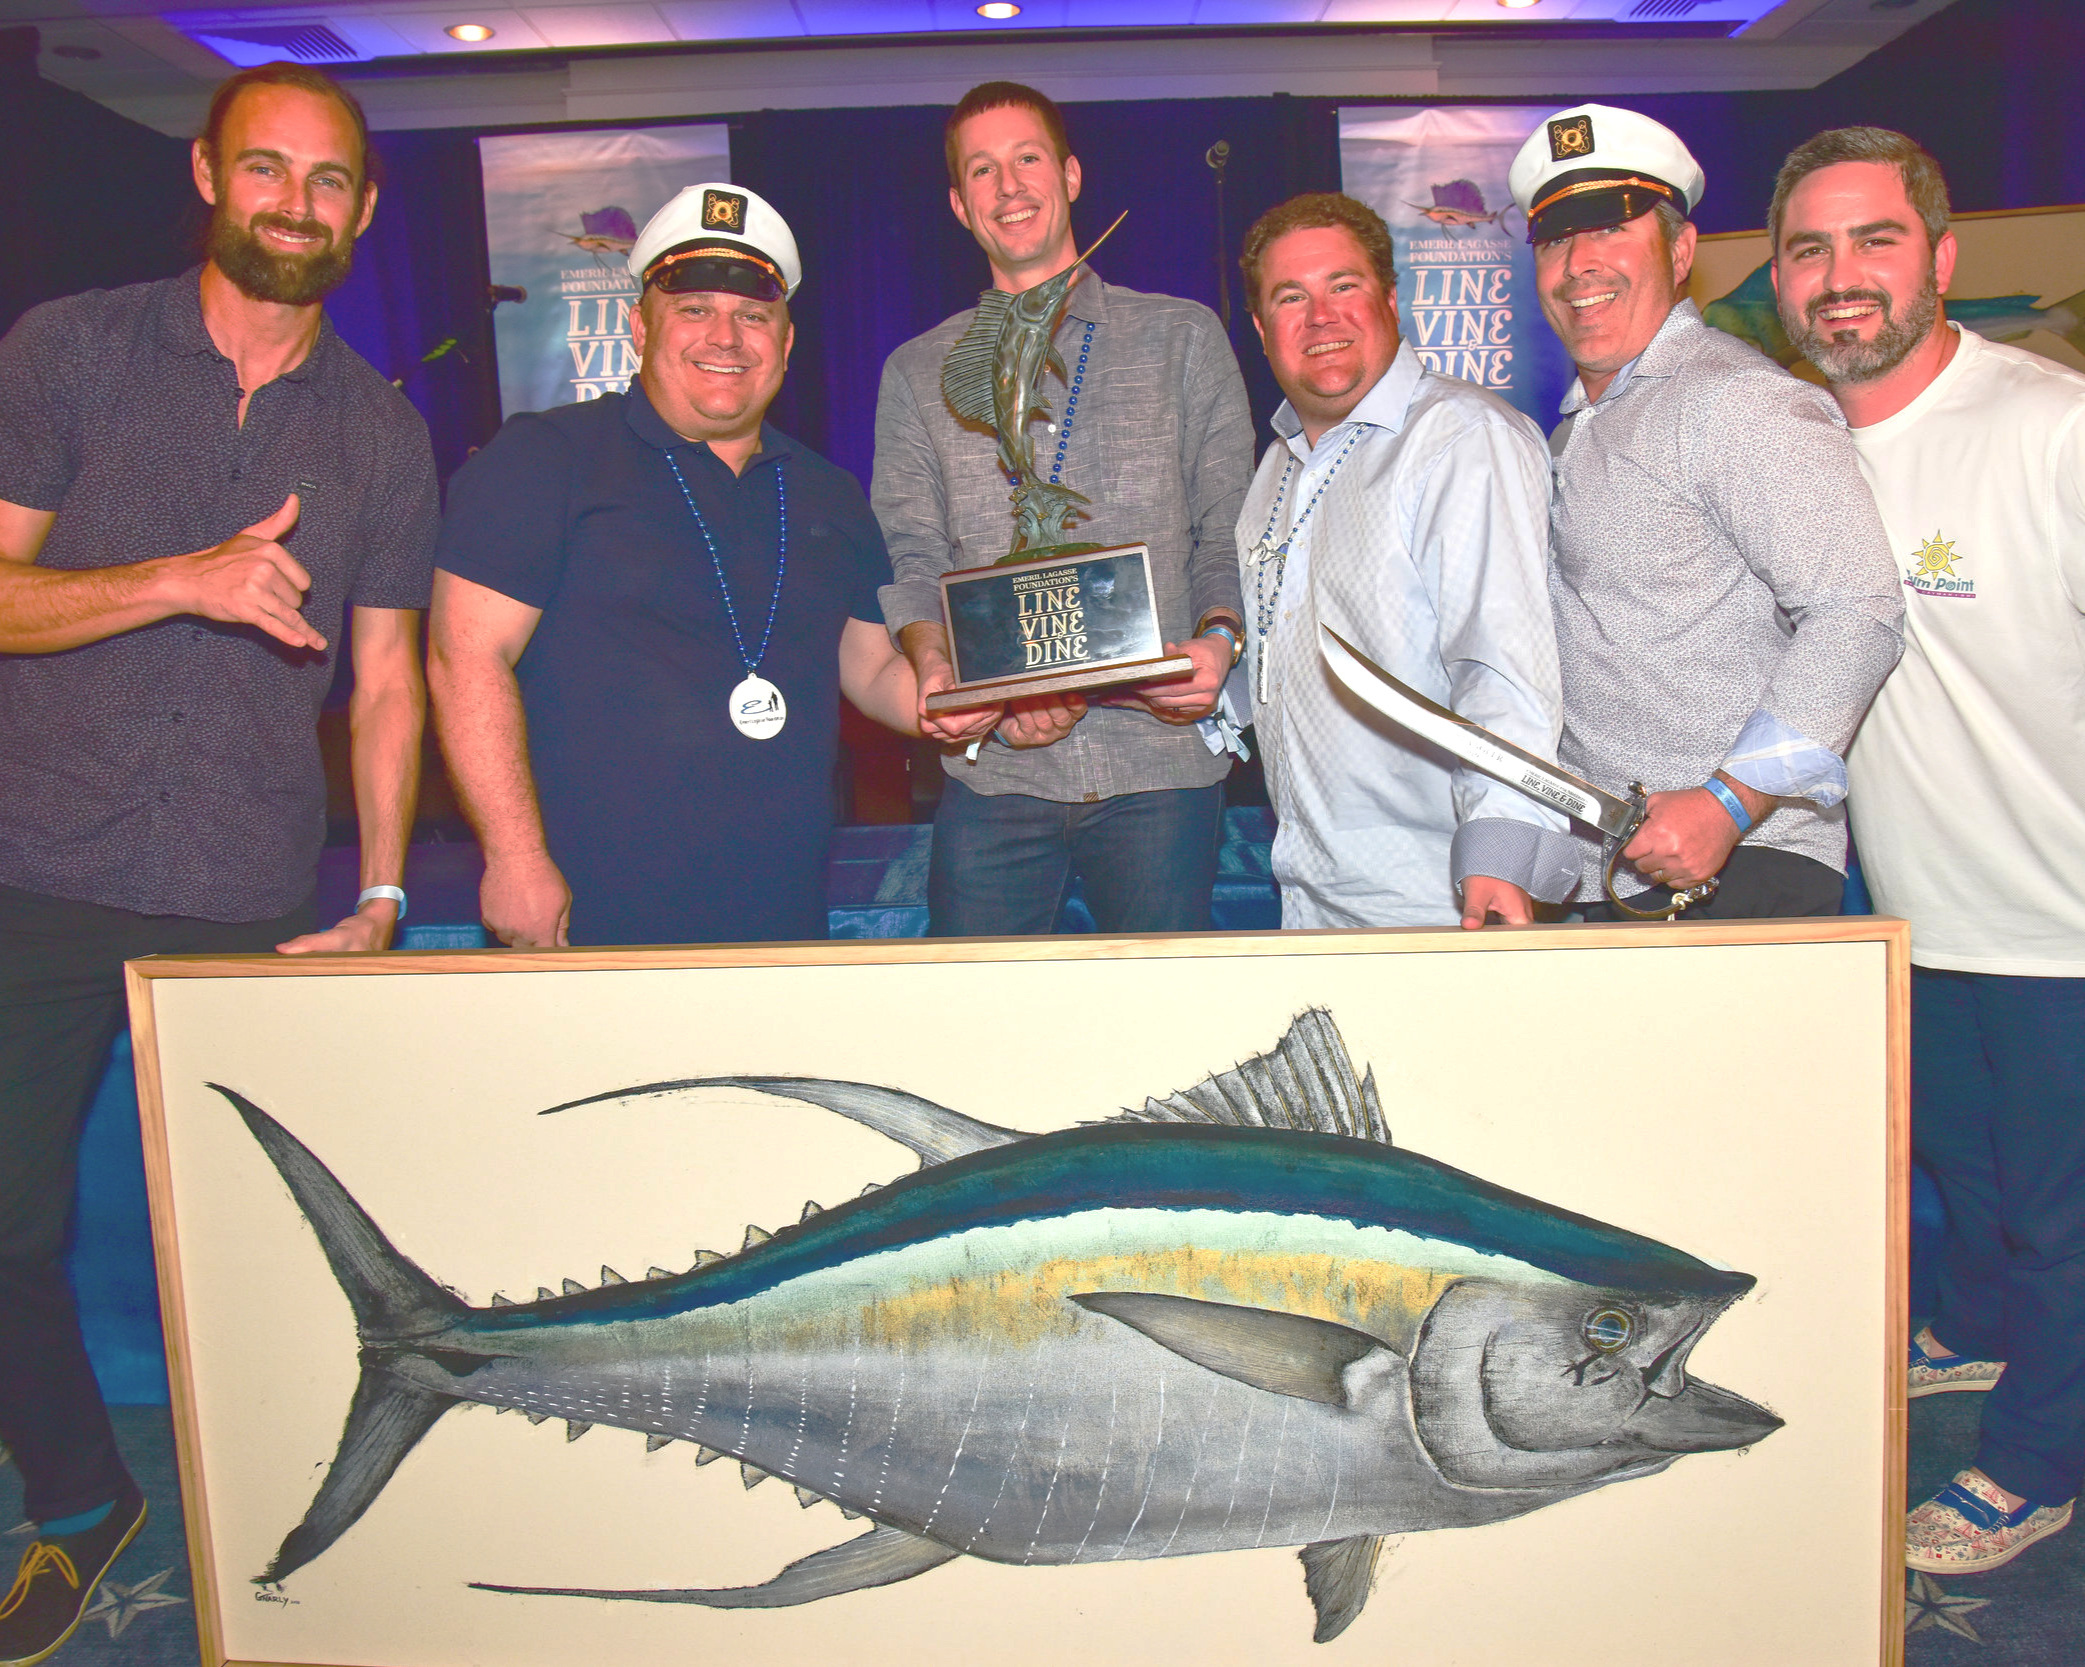 saturday, february 8 - Charity Fishing Tournament Day 28:00PM- 4:00PM Pier Sixty-Six Marina-Vine & Dine Seafood Cook-Off5:00PM- 10:00PM Conrad Fort Laurderdale